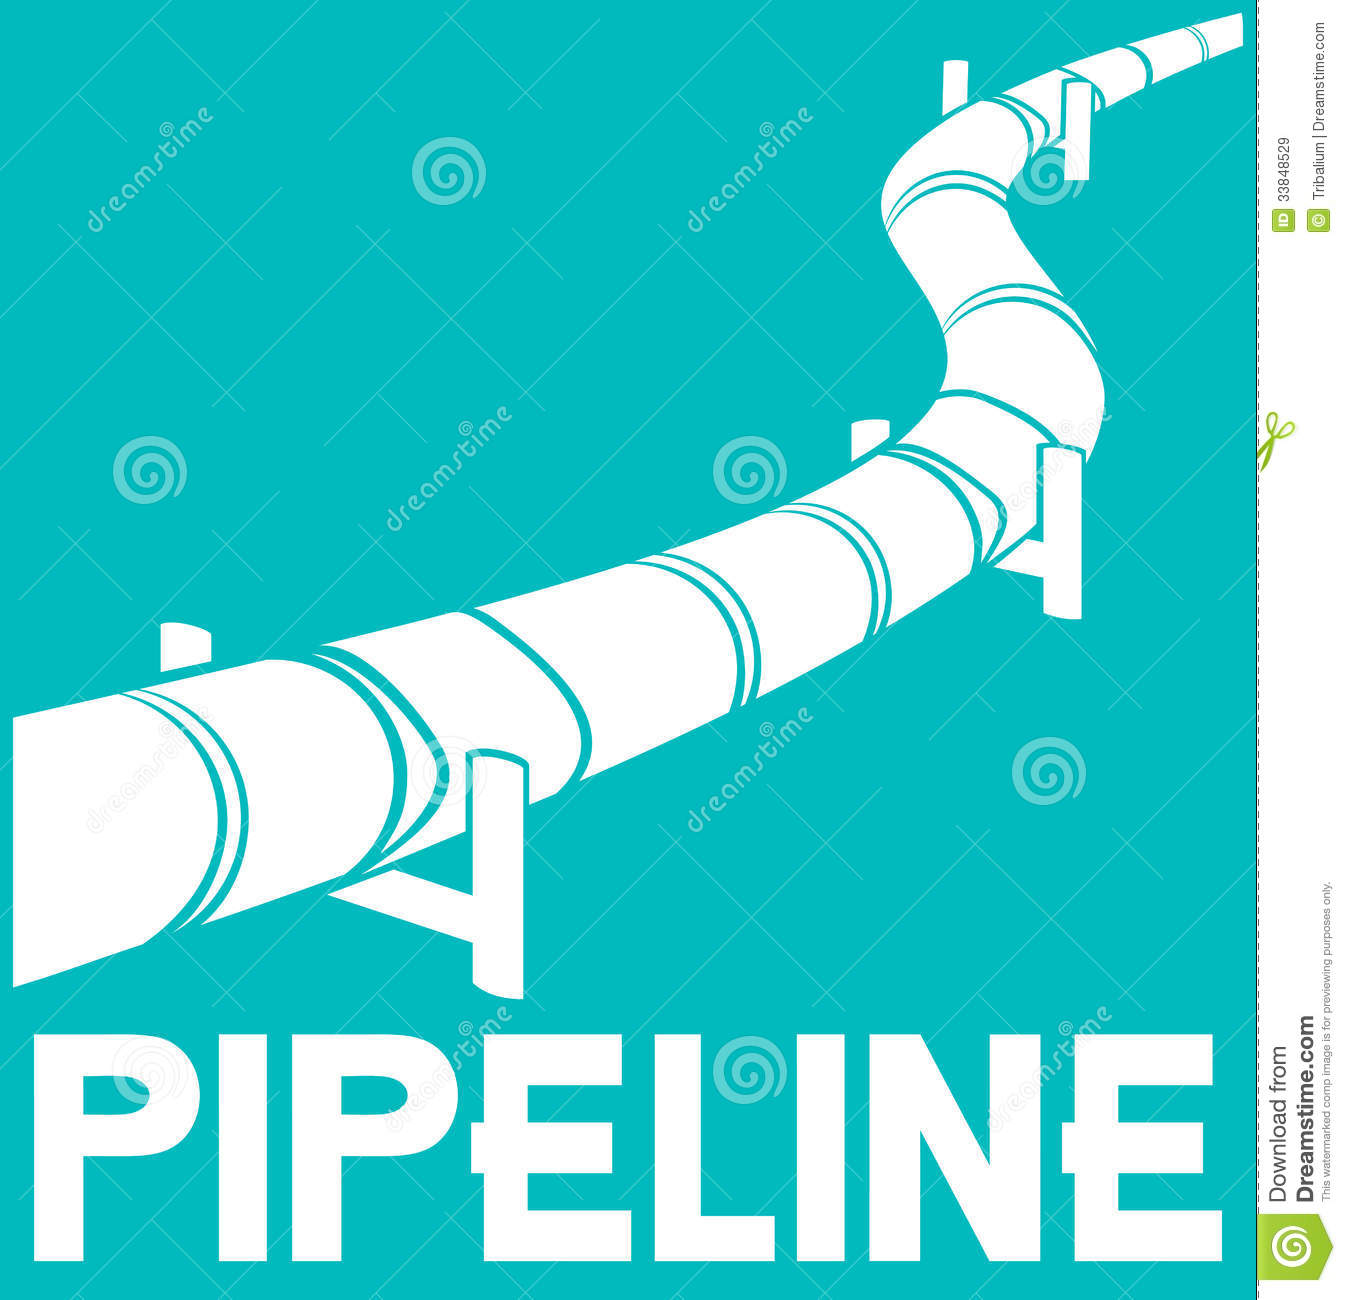 Pipeline 20clipart | Clipart Panda - Free Clipart Images